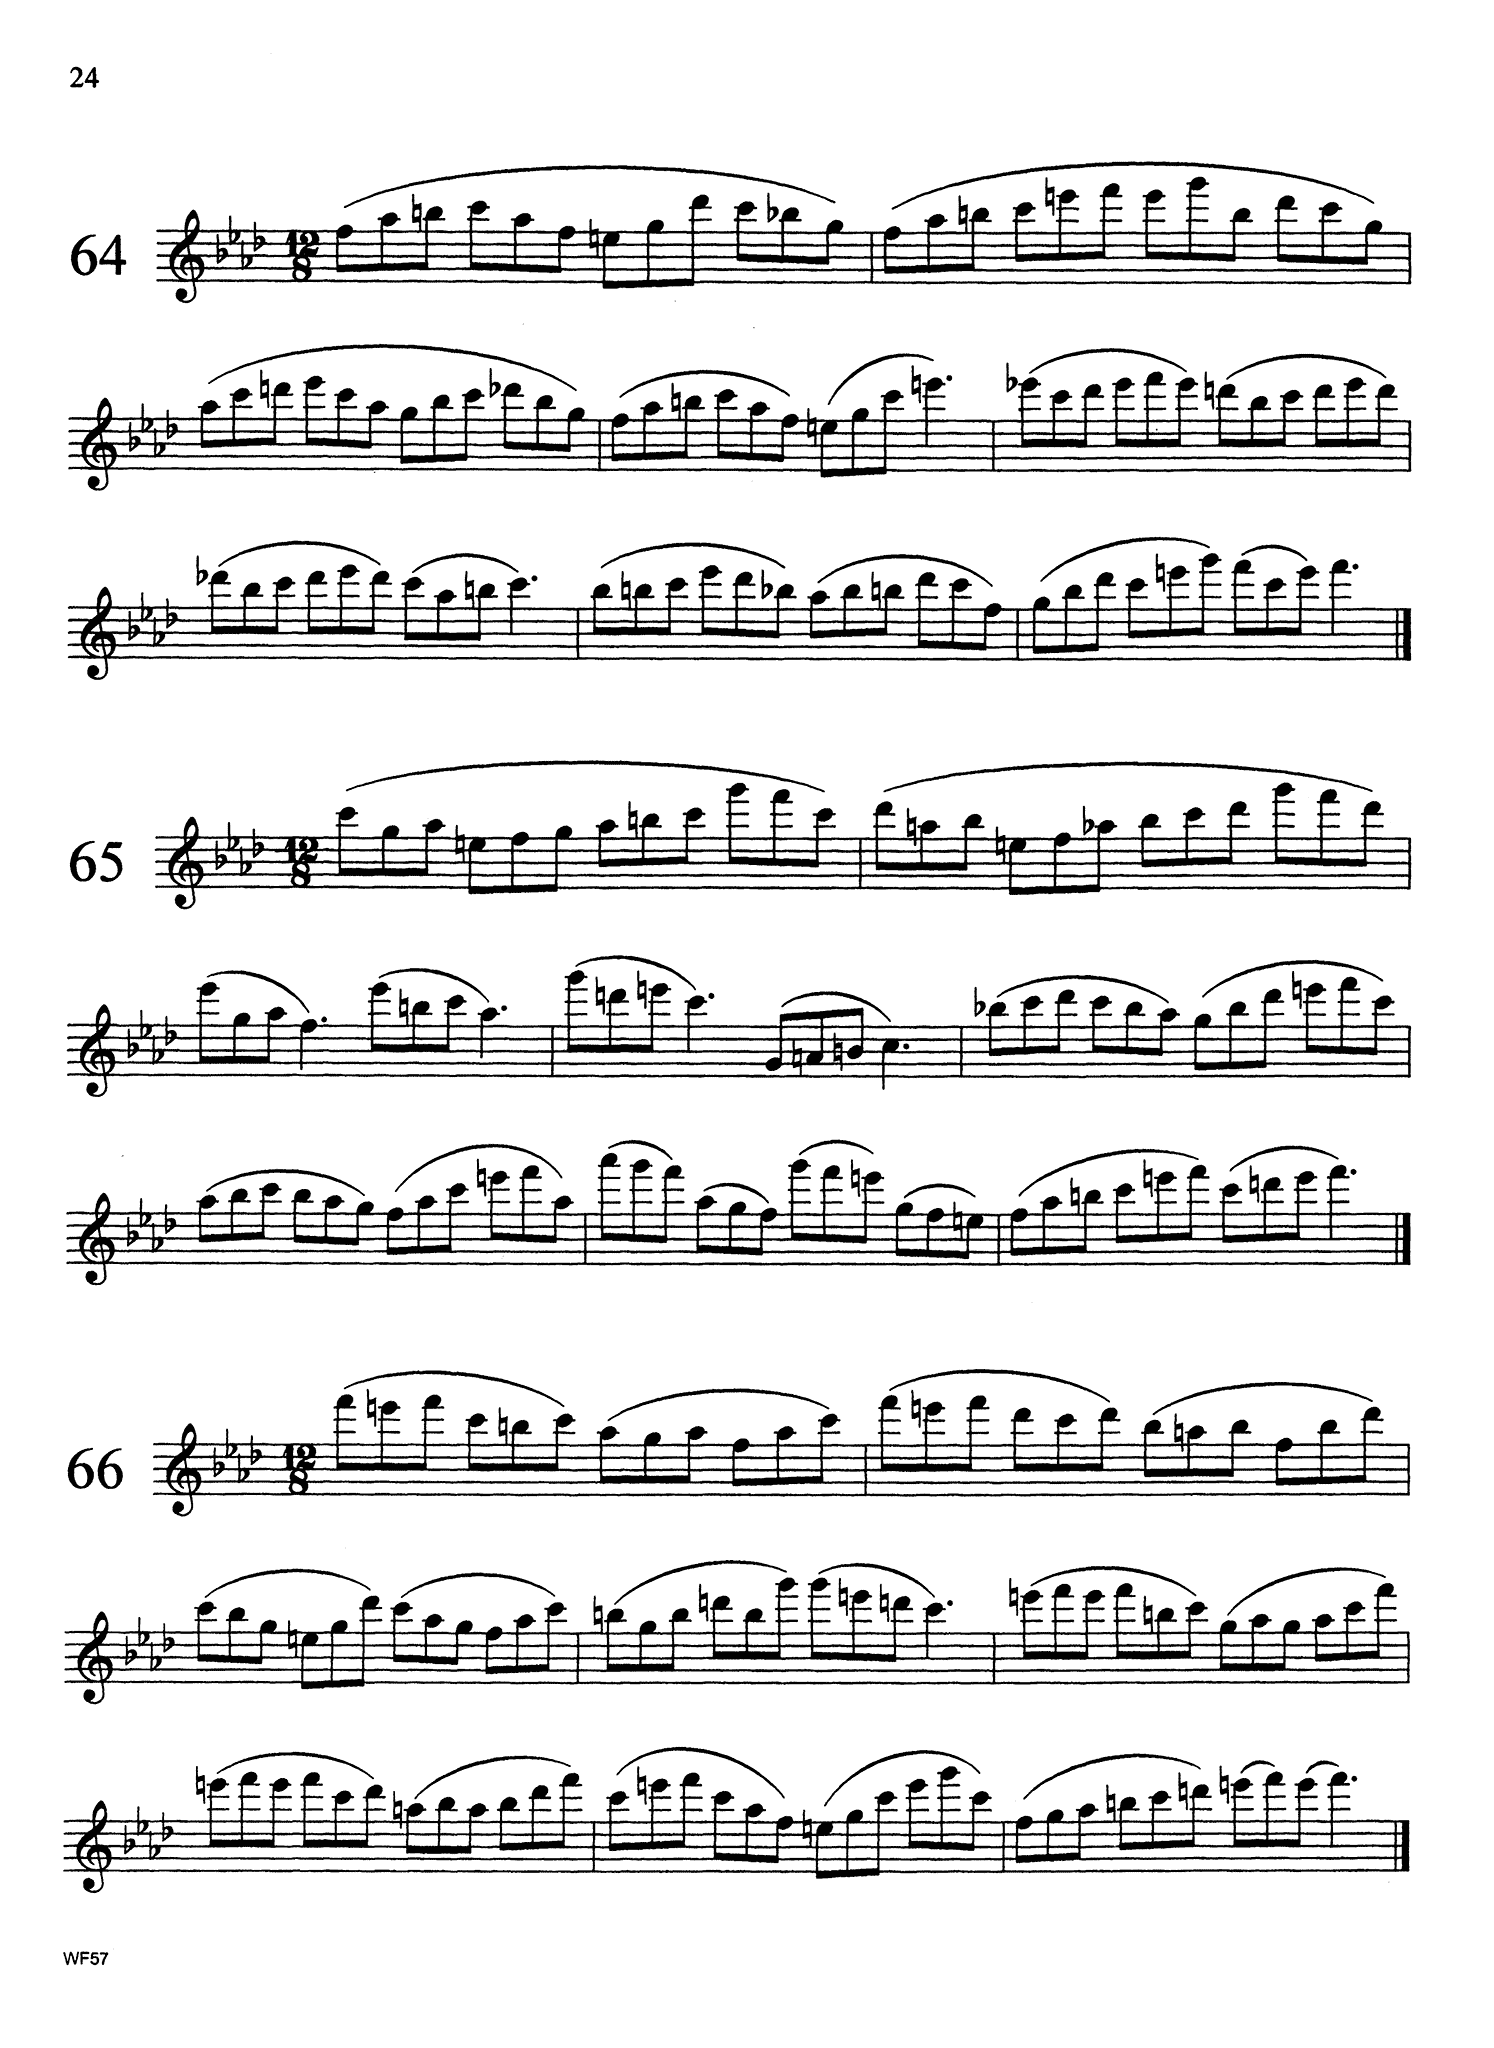 Altissimo Studies for Clarinet Page 24